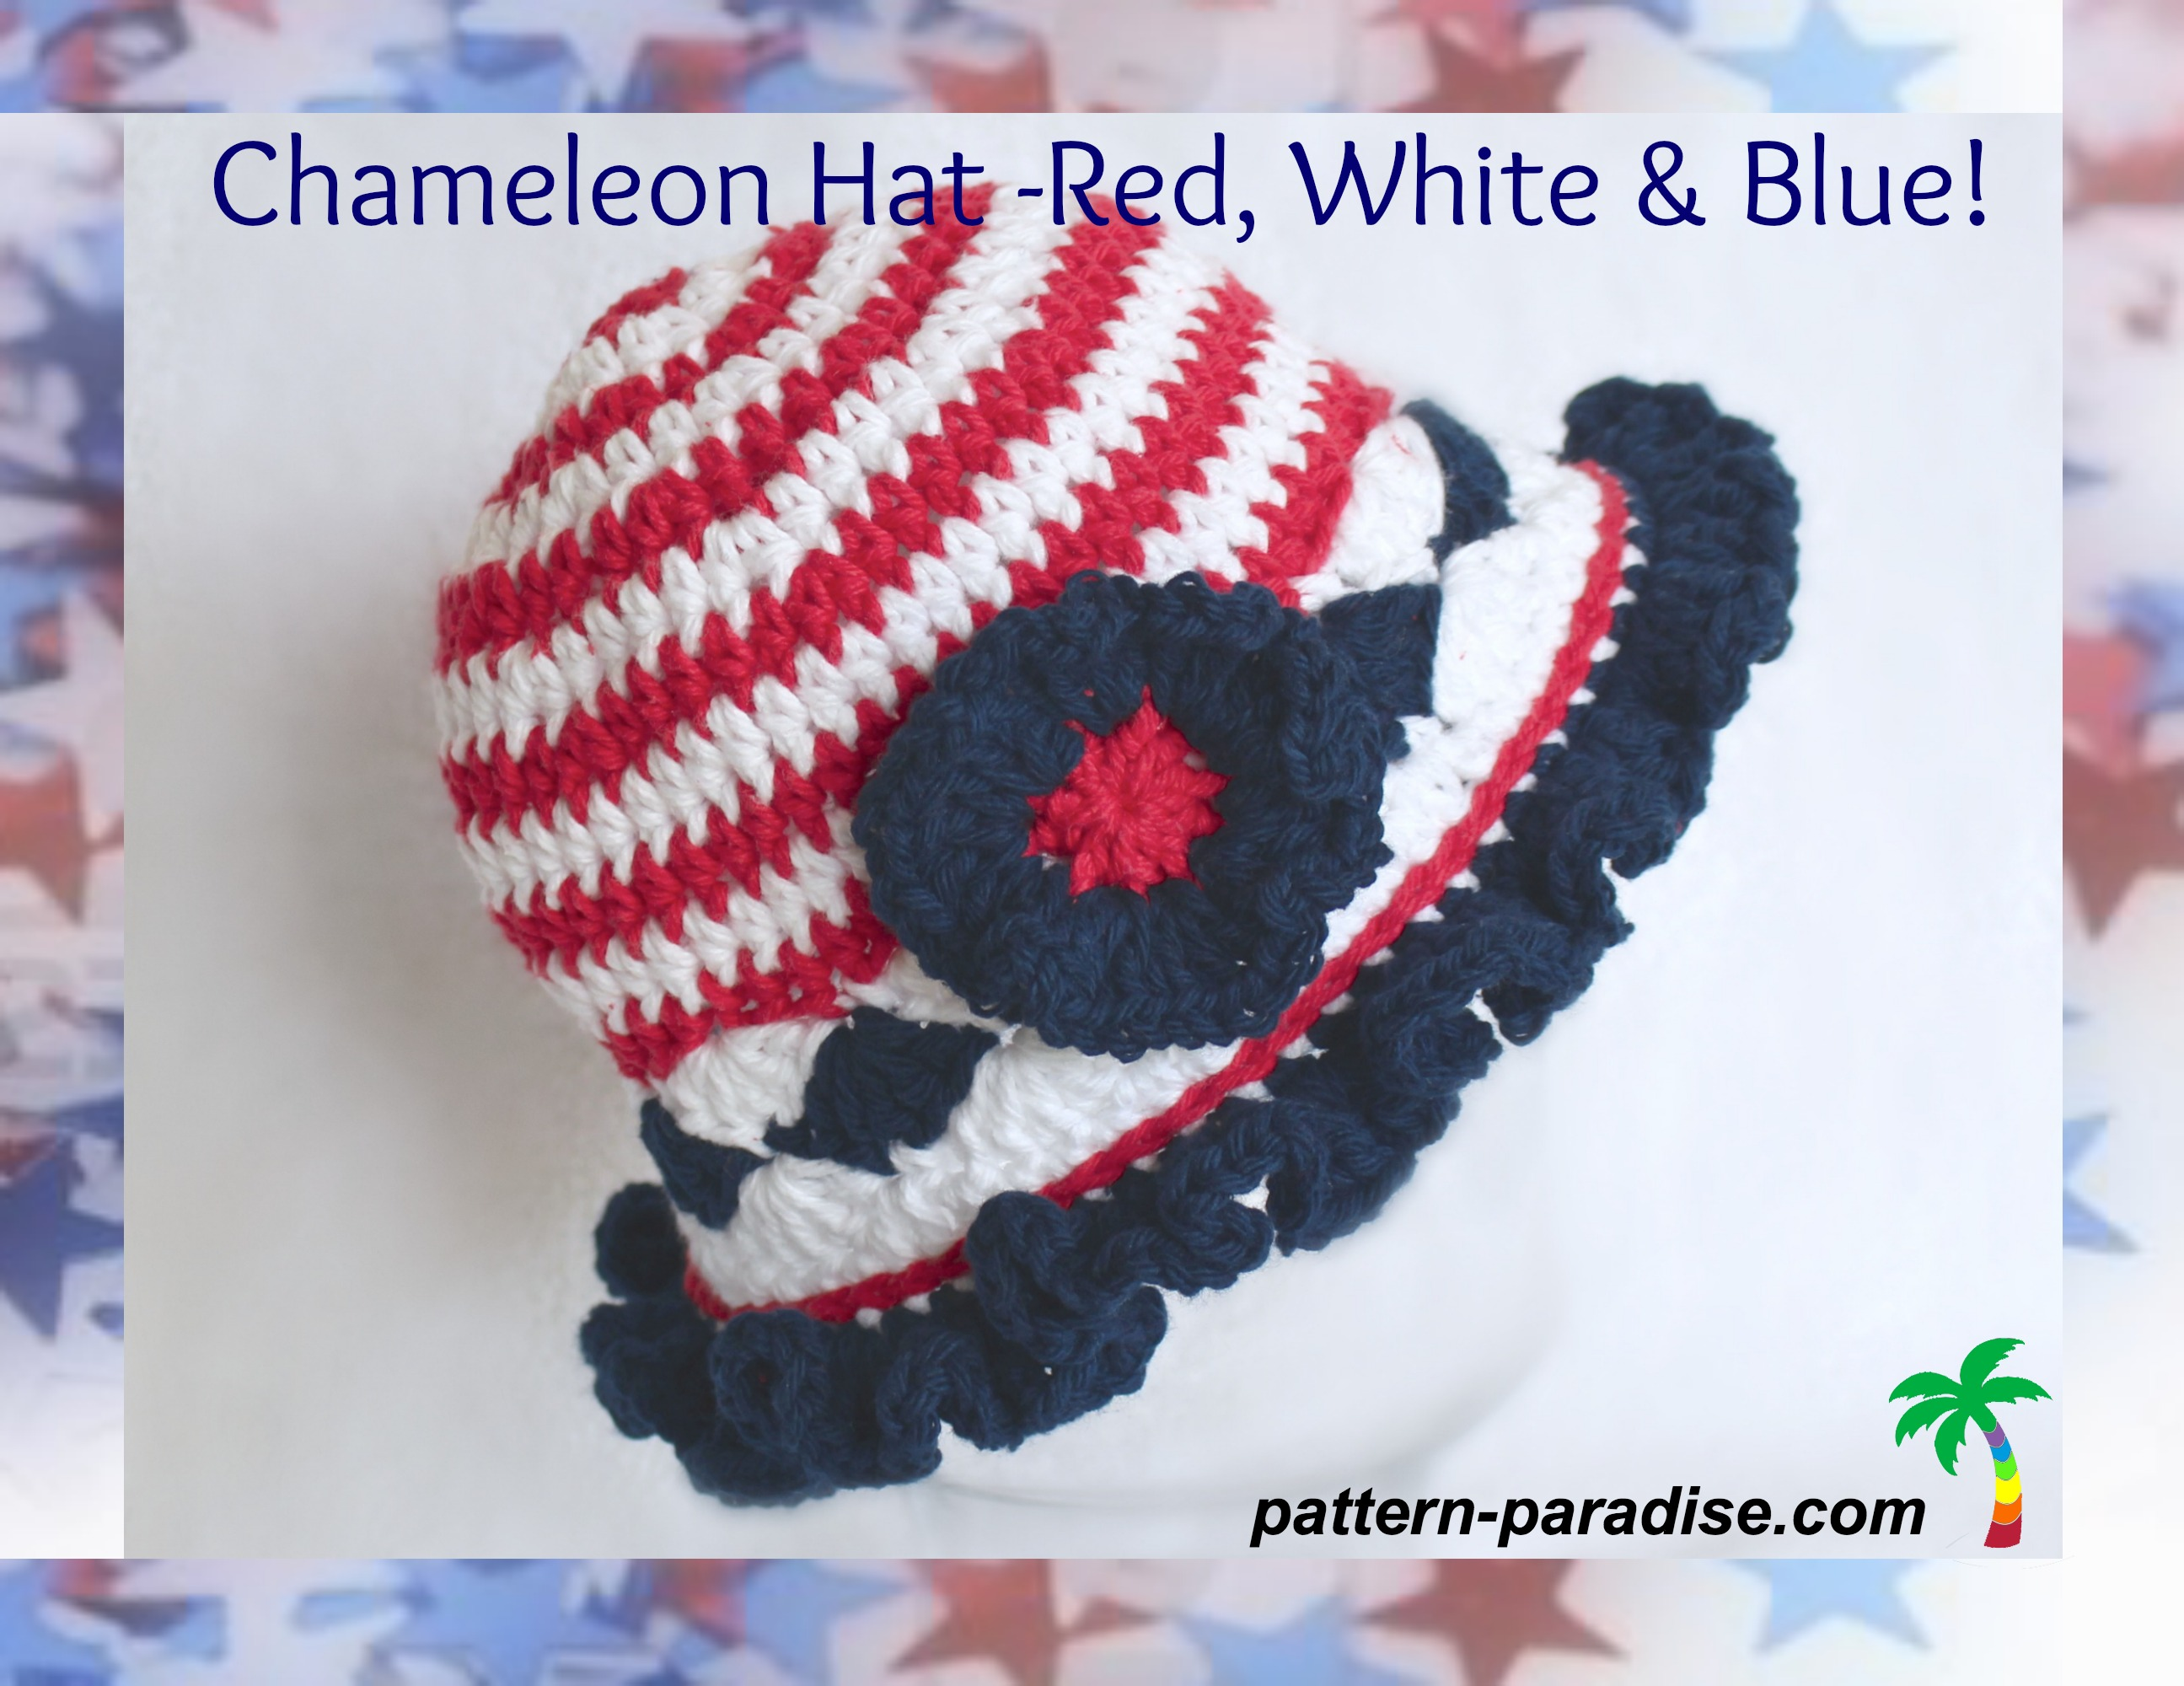 FREE Crochet Pattern - Chameleon Hat Red, White & Blue! | Pattern ...